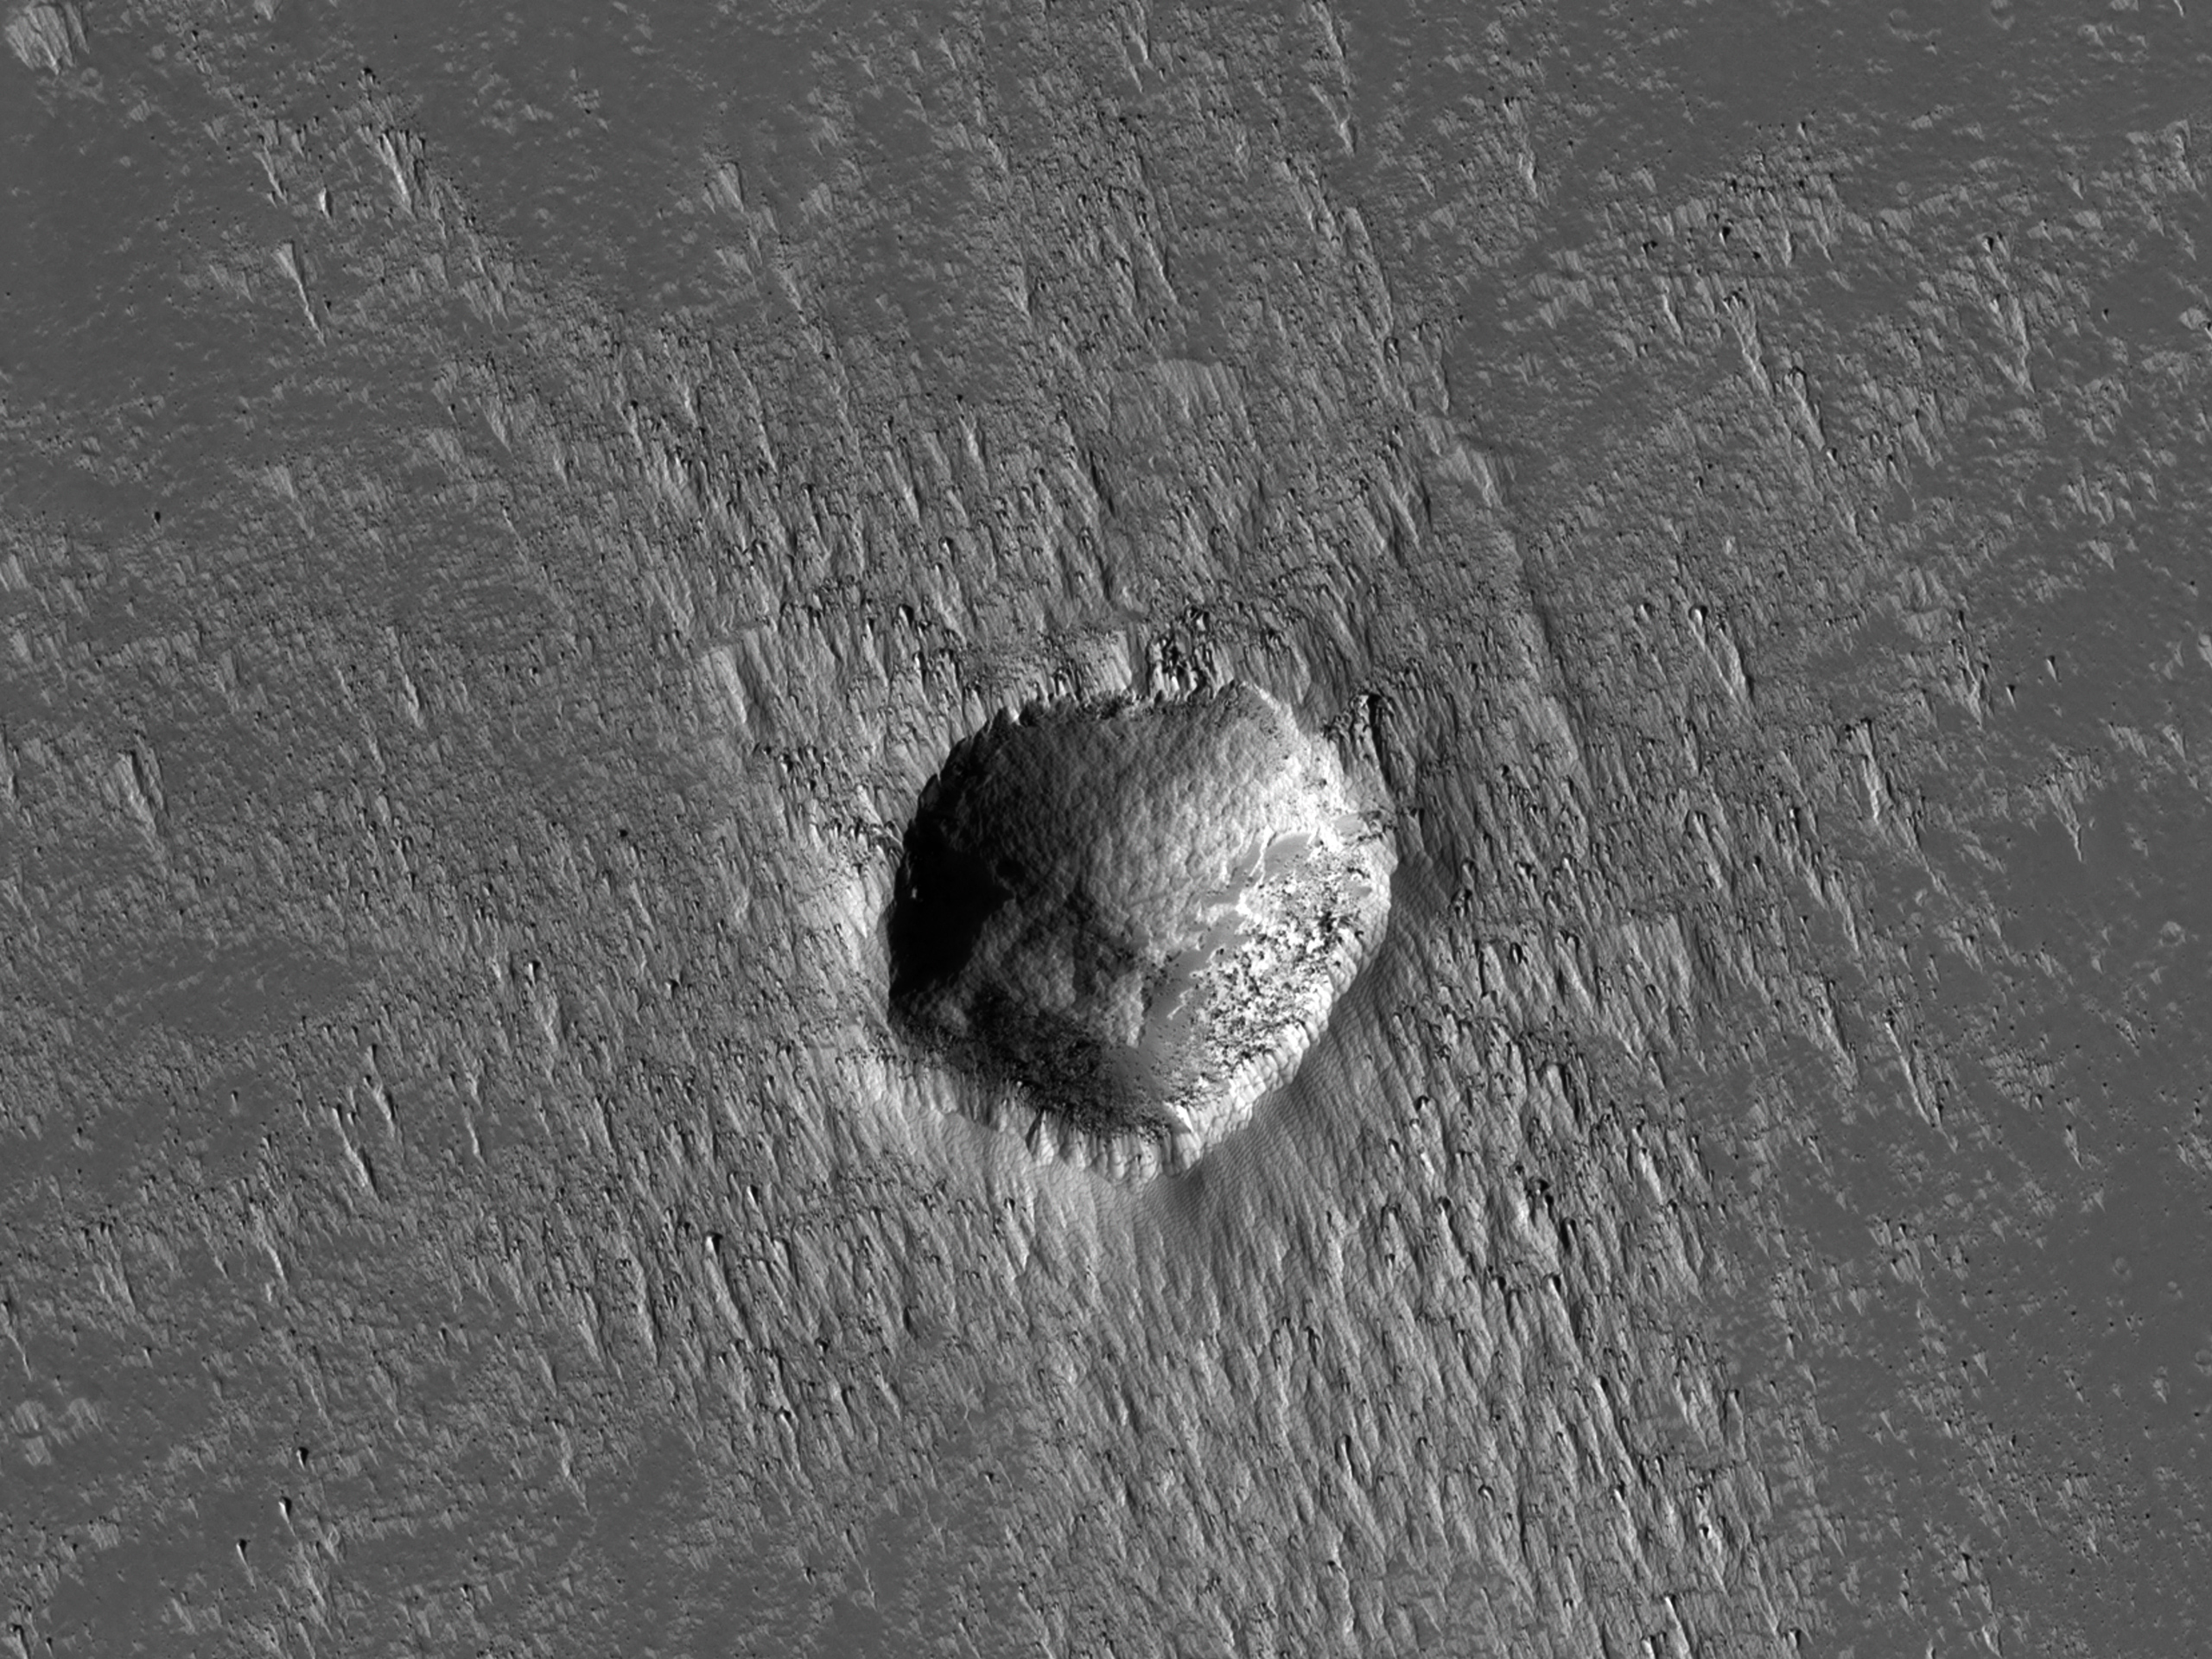 A Young Crater in Syria Planum